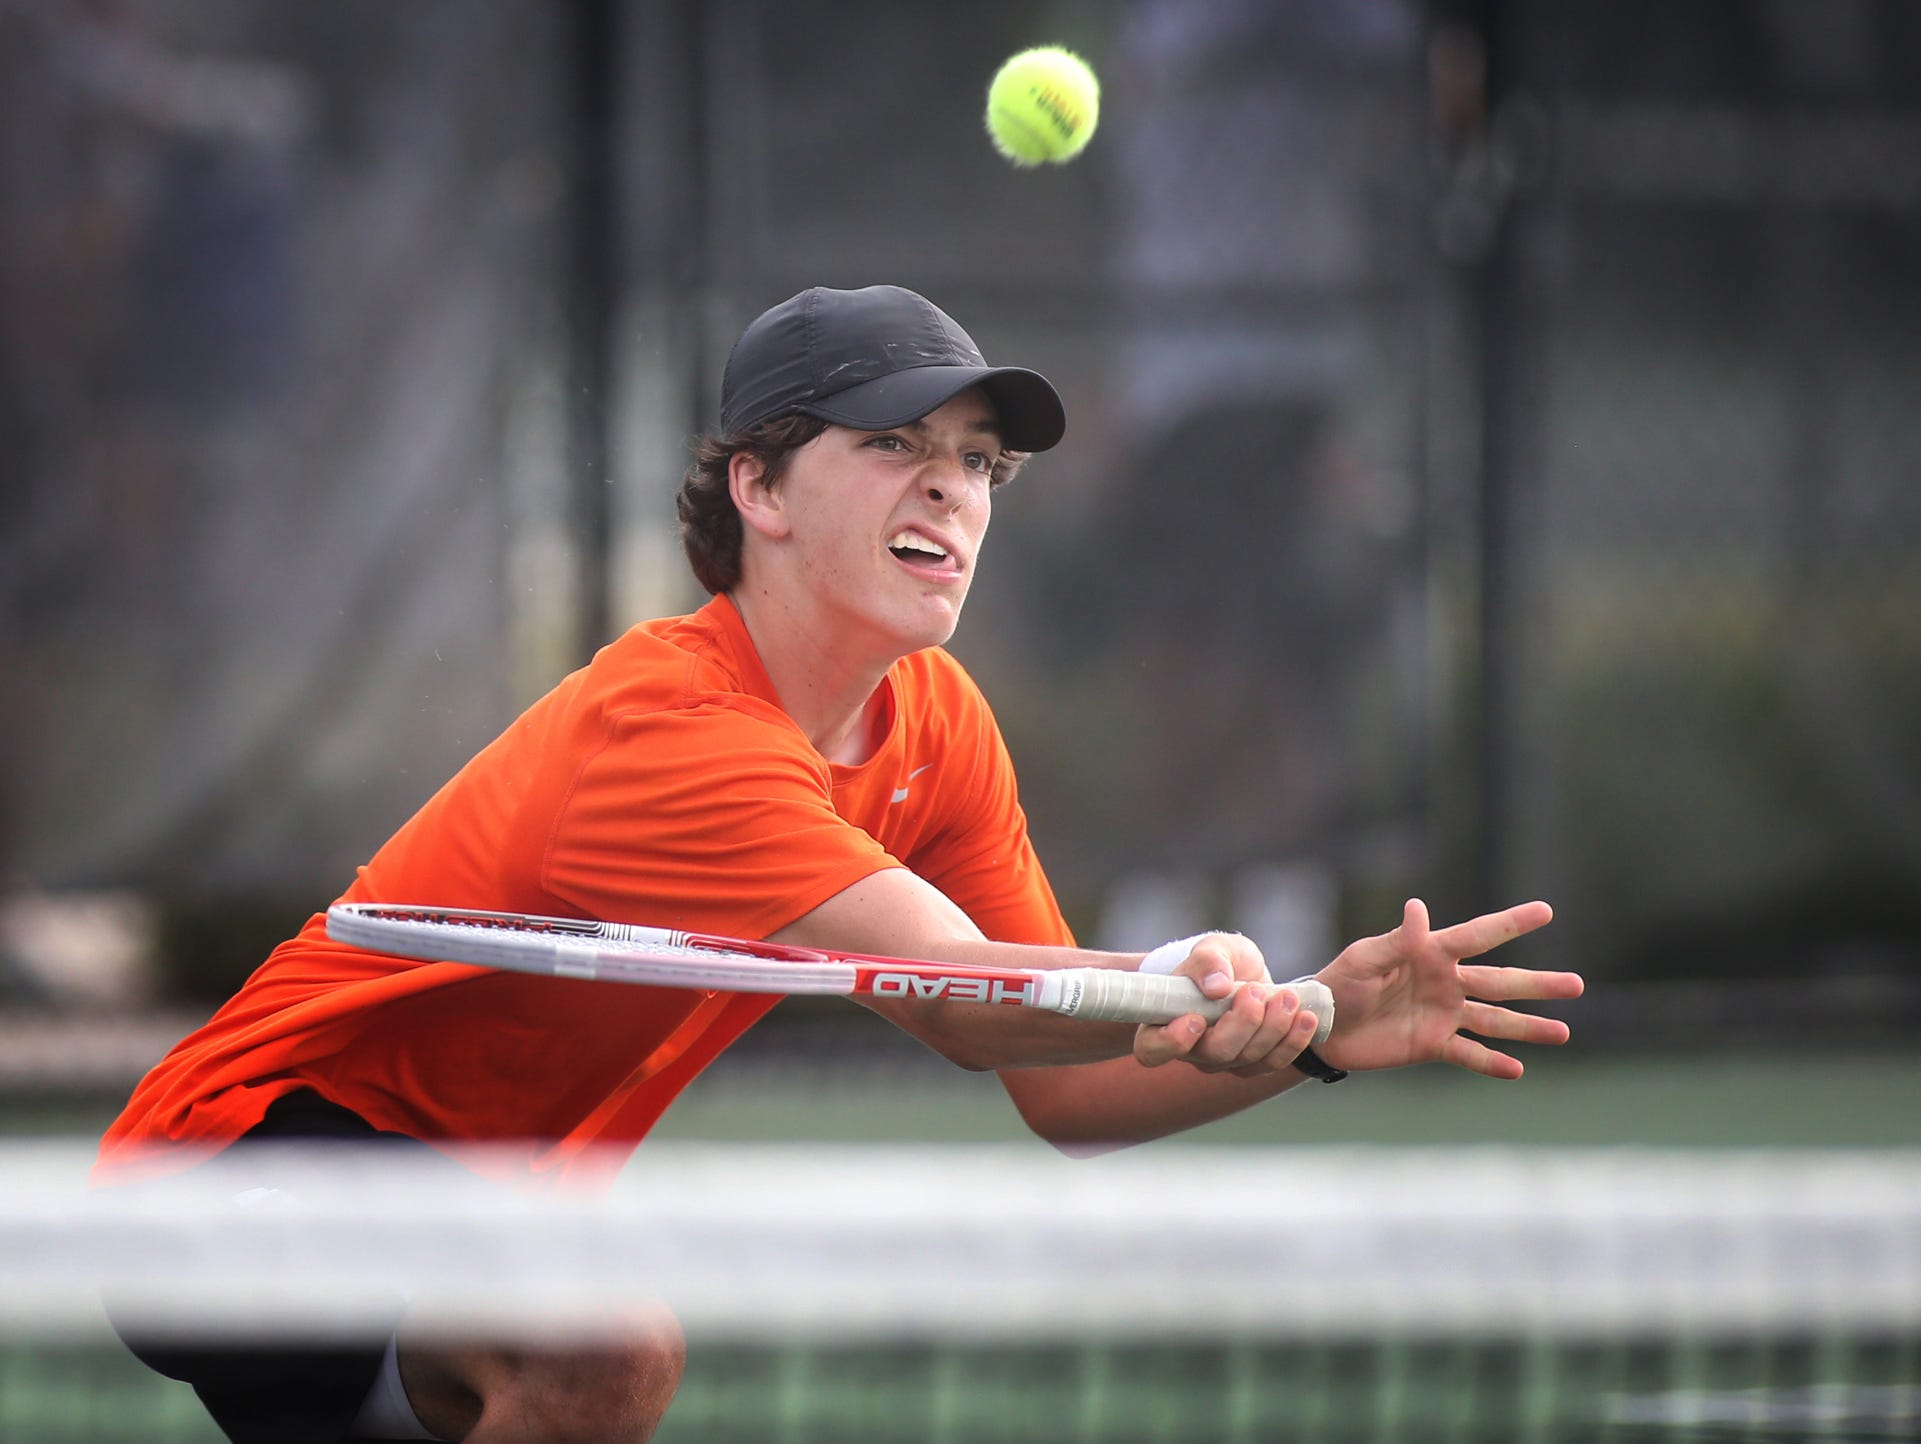 MTCS's Thomas Goodwyn returns a ball during a doubles semifinals match in the CLass A/AA state tournament at Old Fort Park. Goodwyn's partner was Will Reeves. HELEN COMER / DNJ MTCS's Thomas Goodwyn returns a ball during a doubles semi-finals A-AA TSSAA Class A-AA State Tournament Doubles Tennis Game during Spring Fling at Old Fort Park on Thursday, May 22, 2014. Goodwyn's partner is Will Reeves.